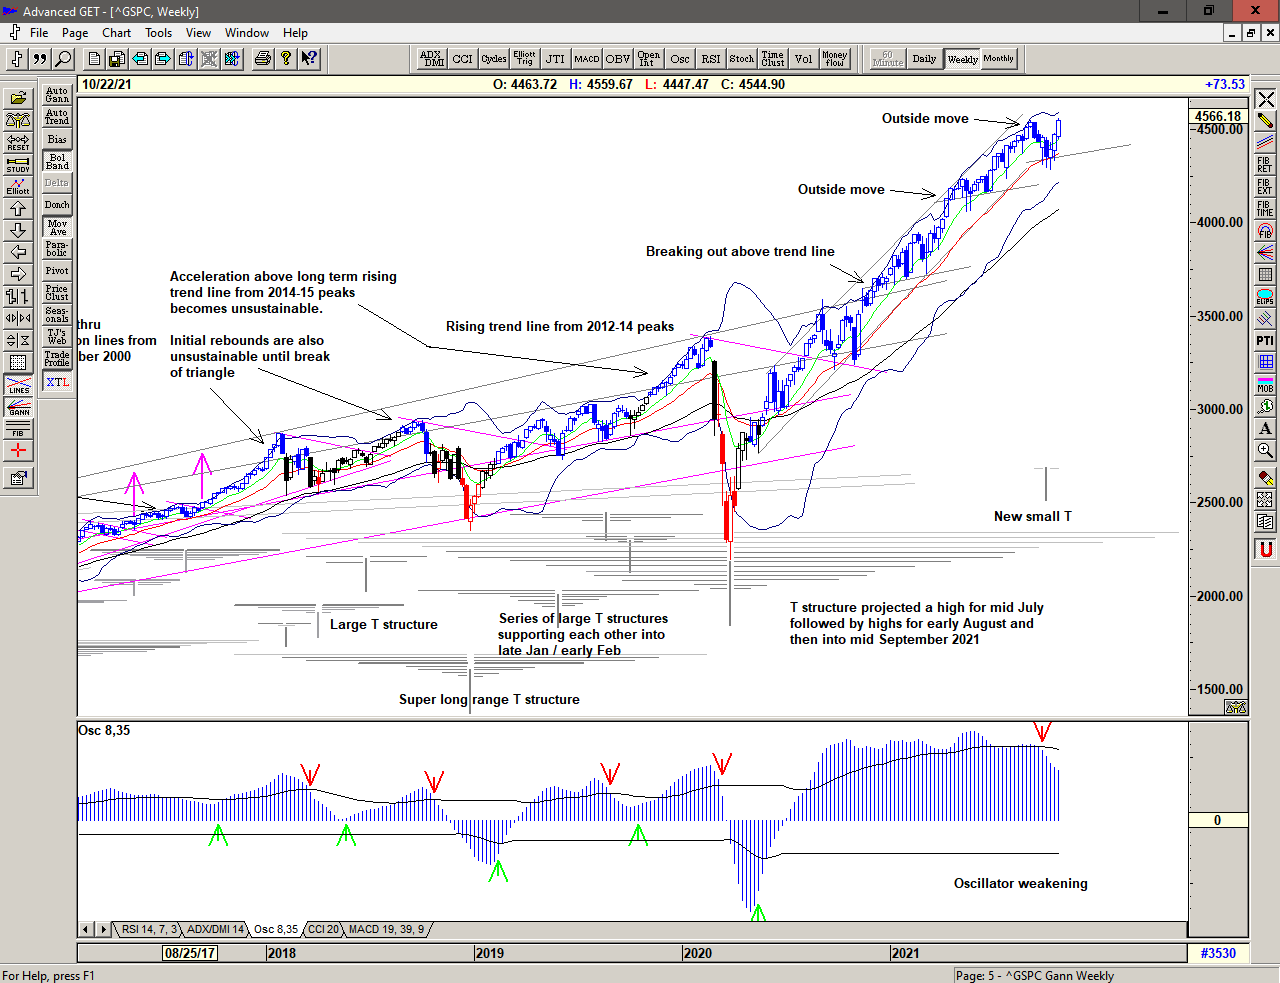 Weekly chart of S&P 500 for 25 October 2021